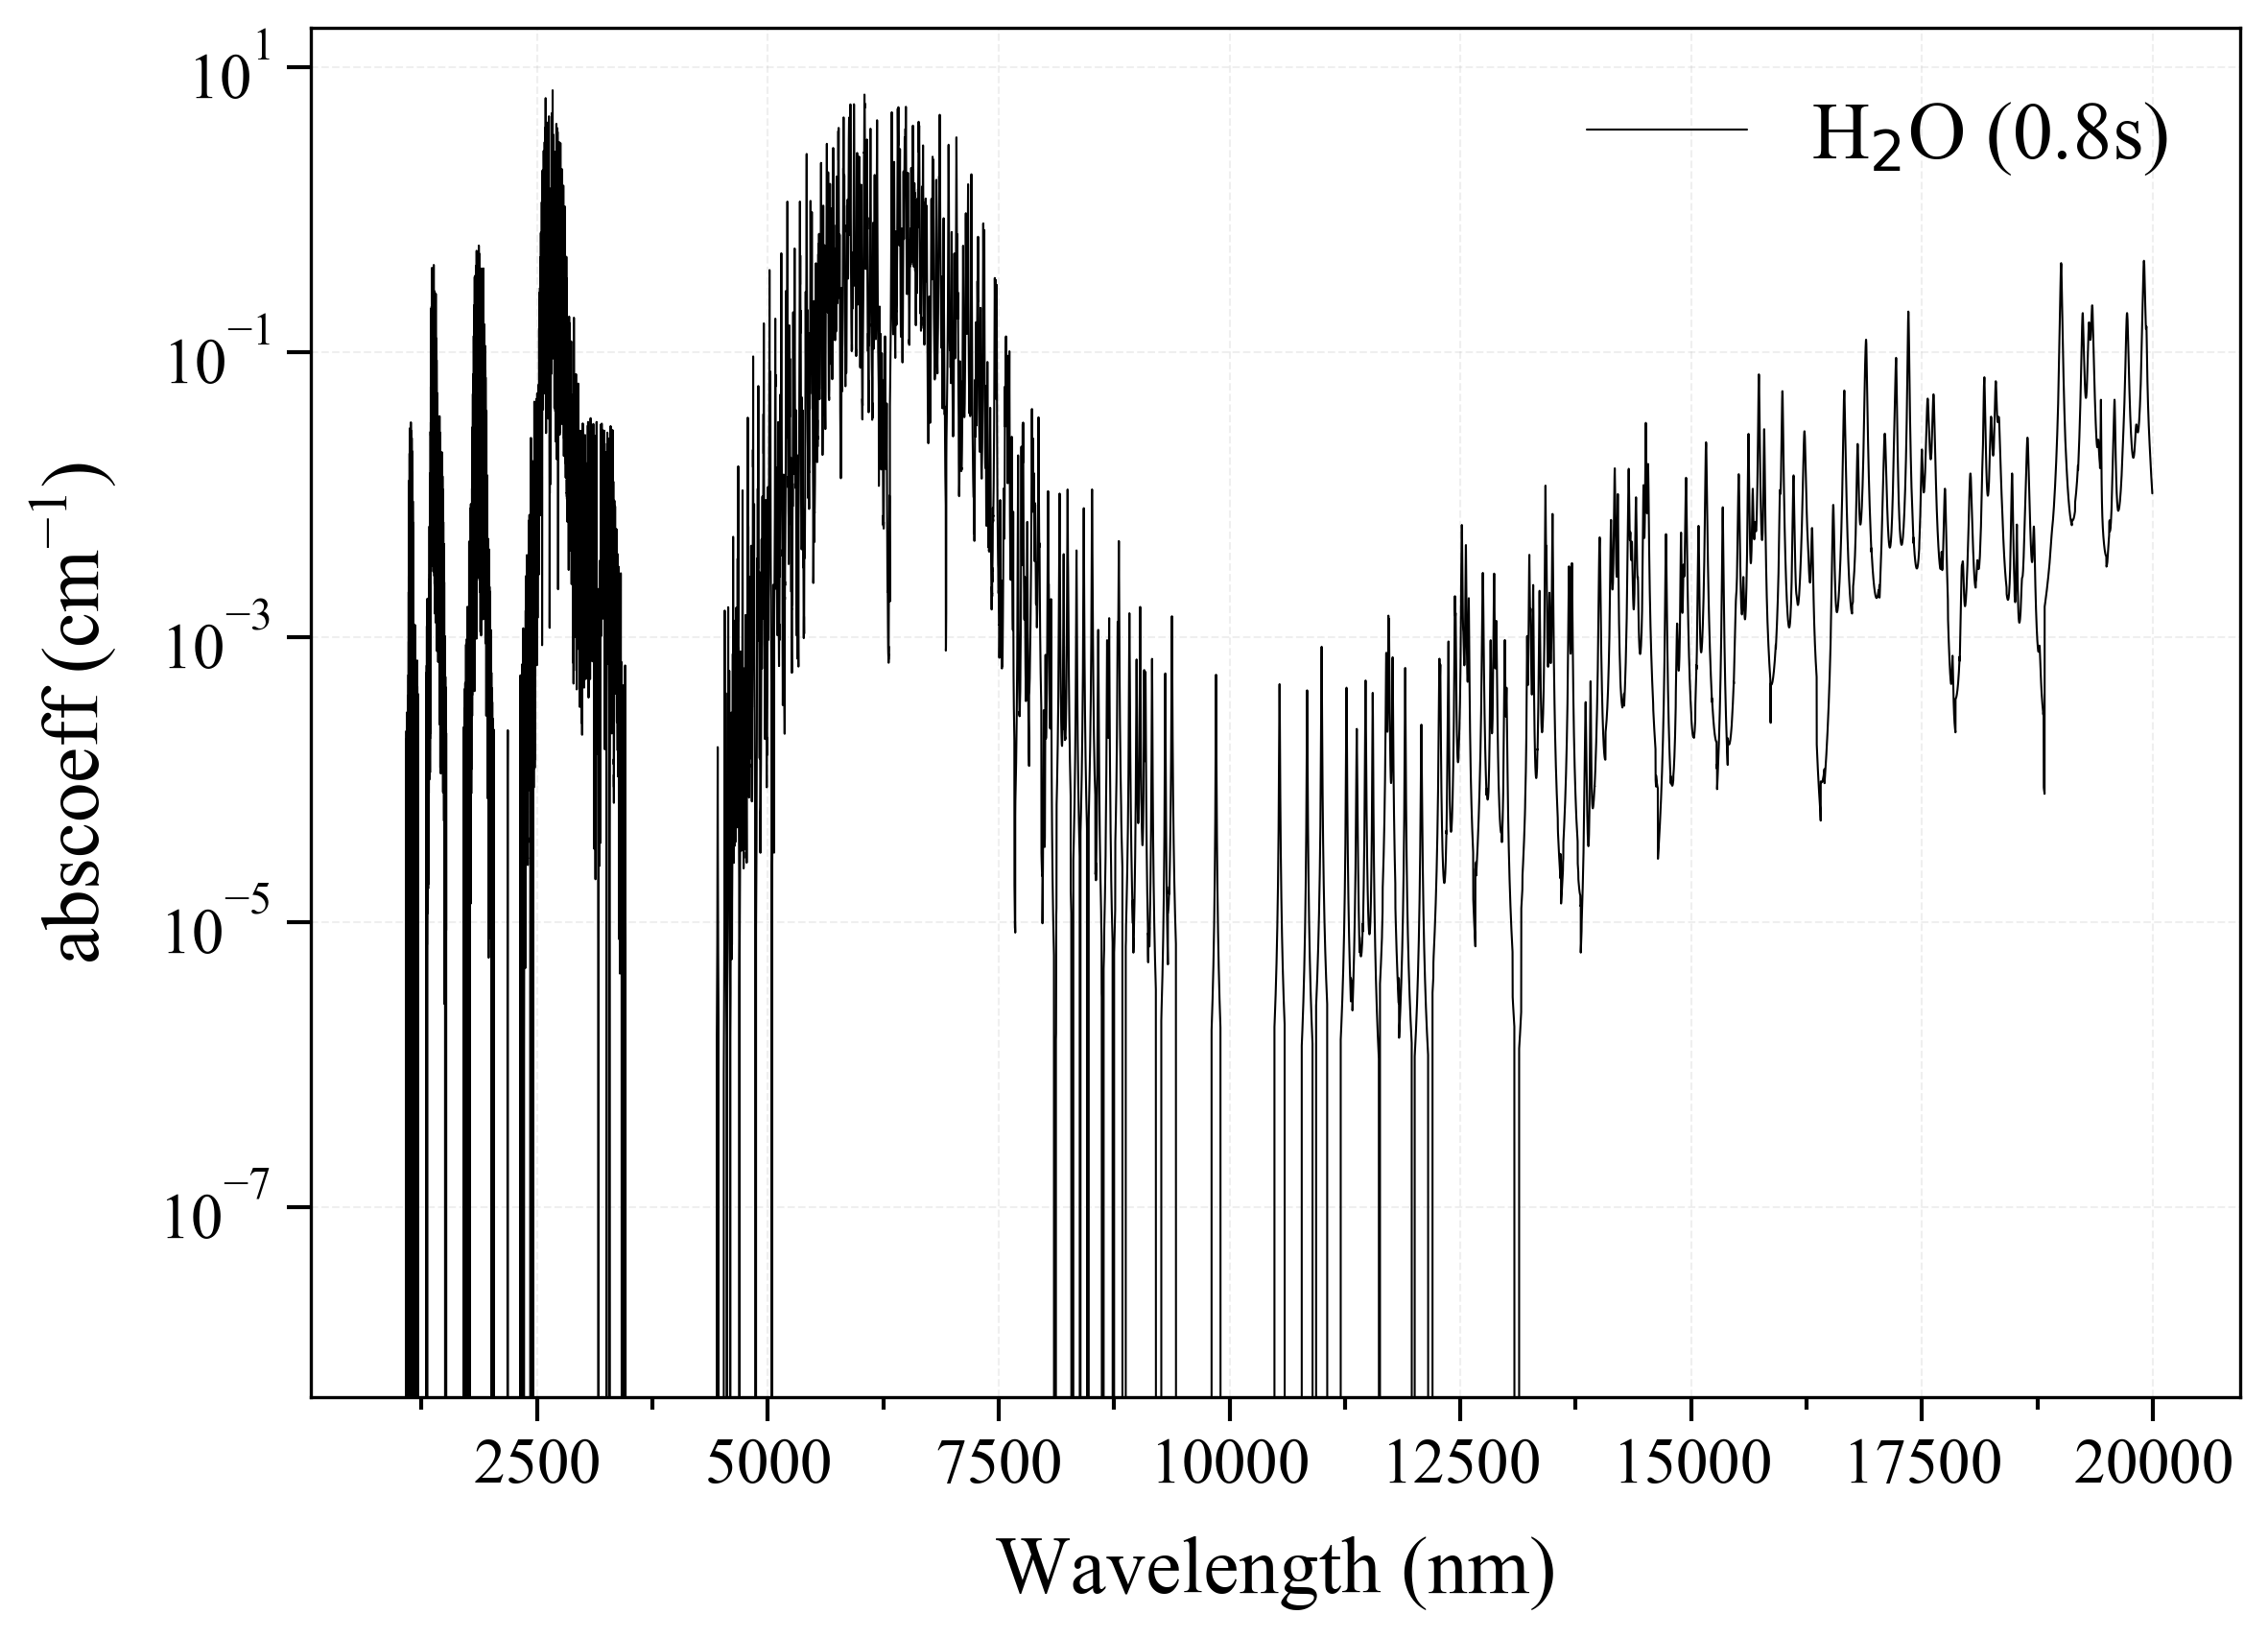 Water H2O infrared absorption coefficient